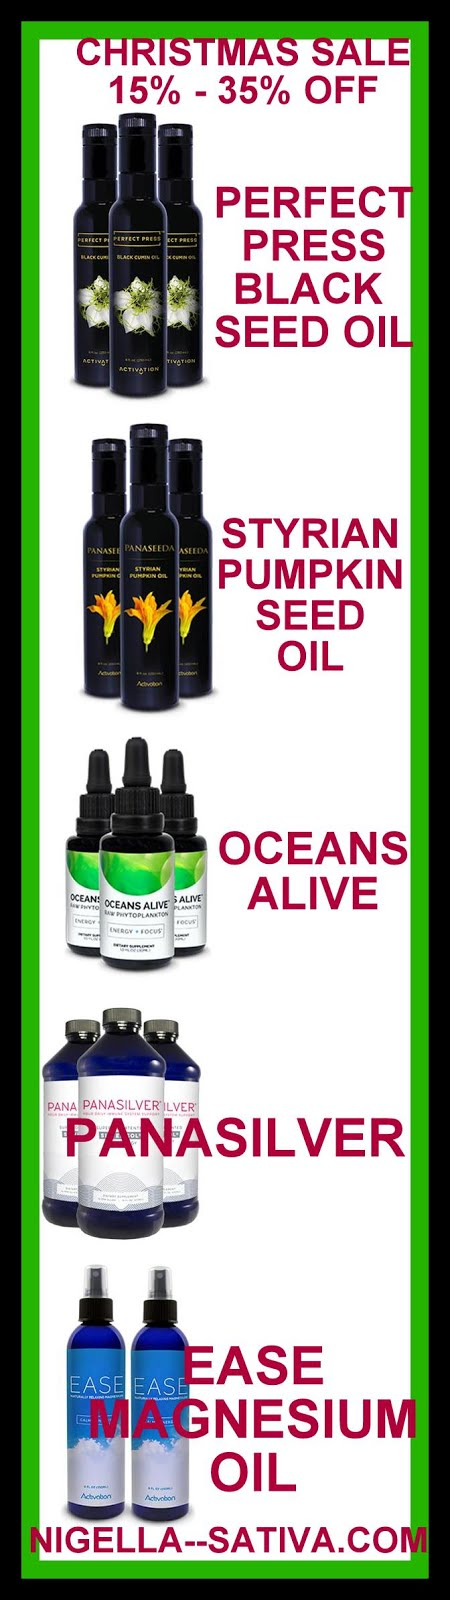 CHRISTMAS - HOLIDAY SALE - BLACK SEED OIL AND MORE ON SALE